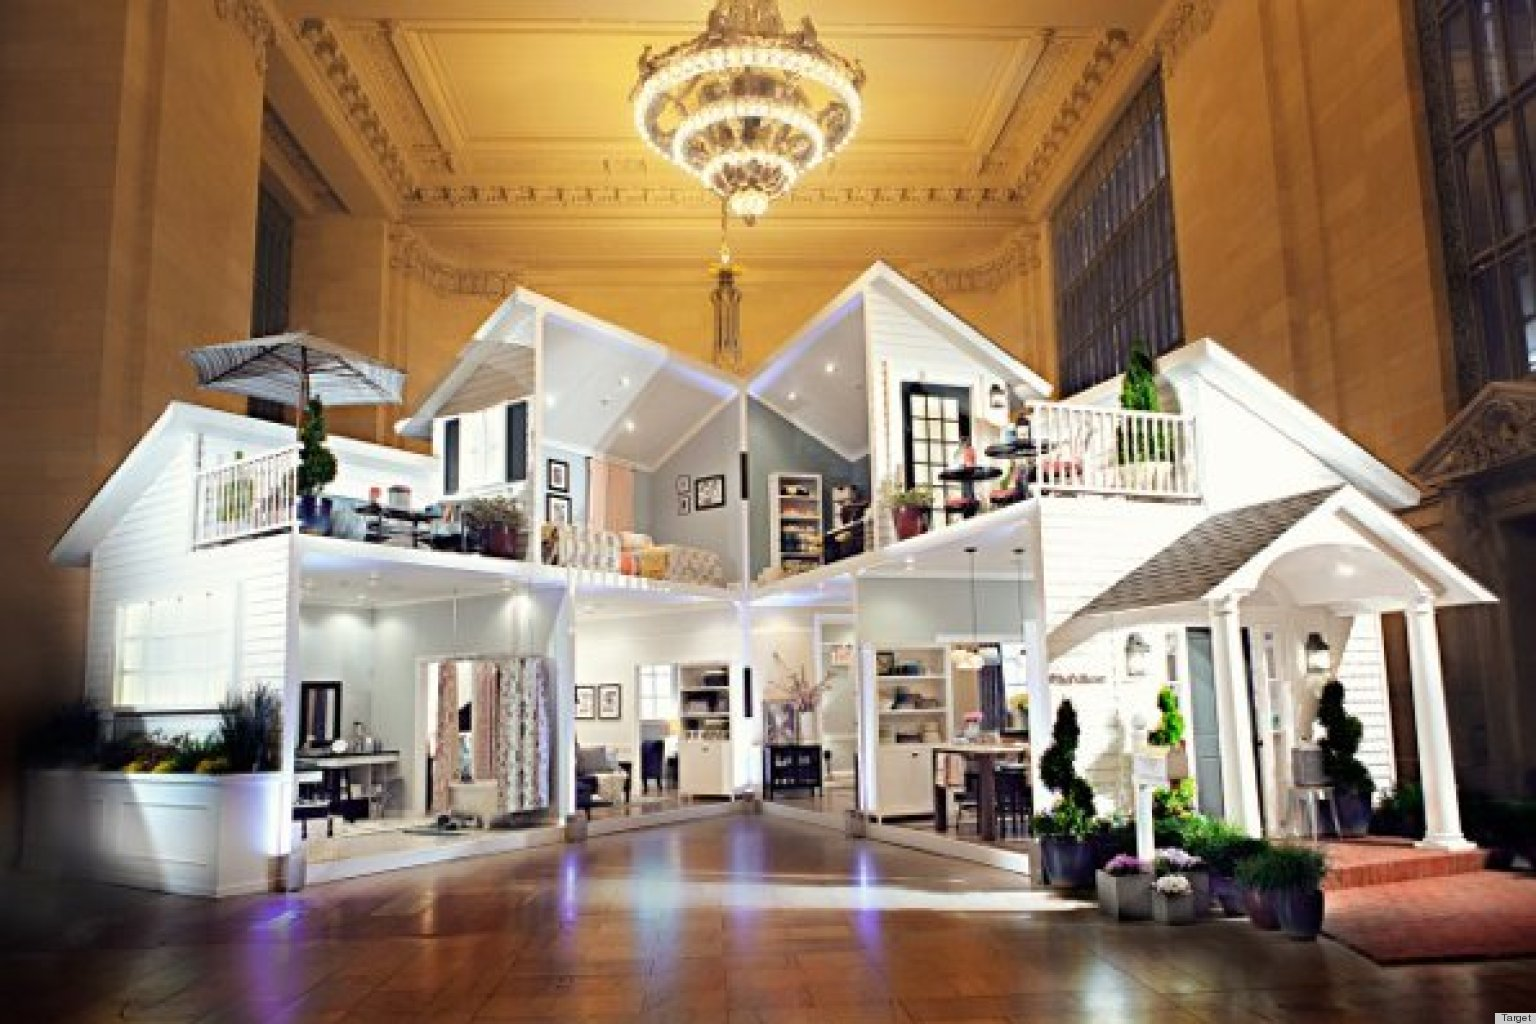 Target Dollhouse In Grand Central Is Probably Bigger Than